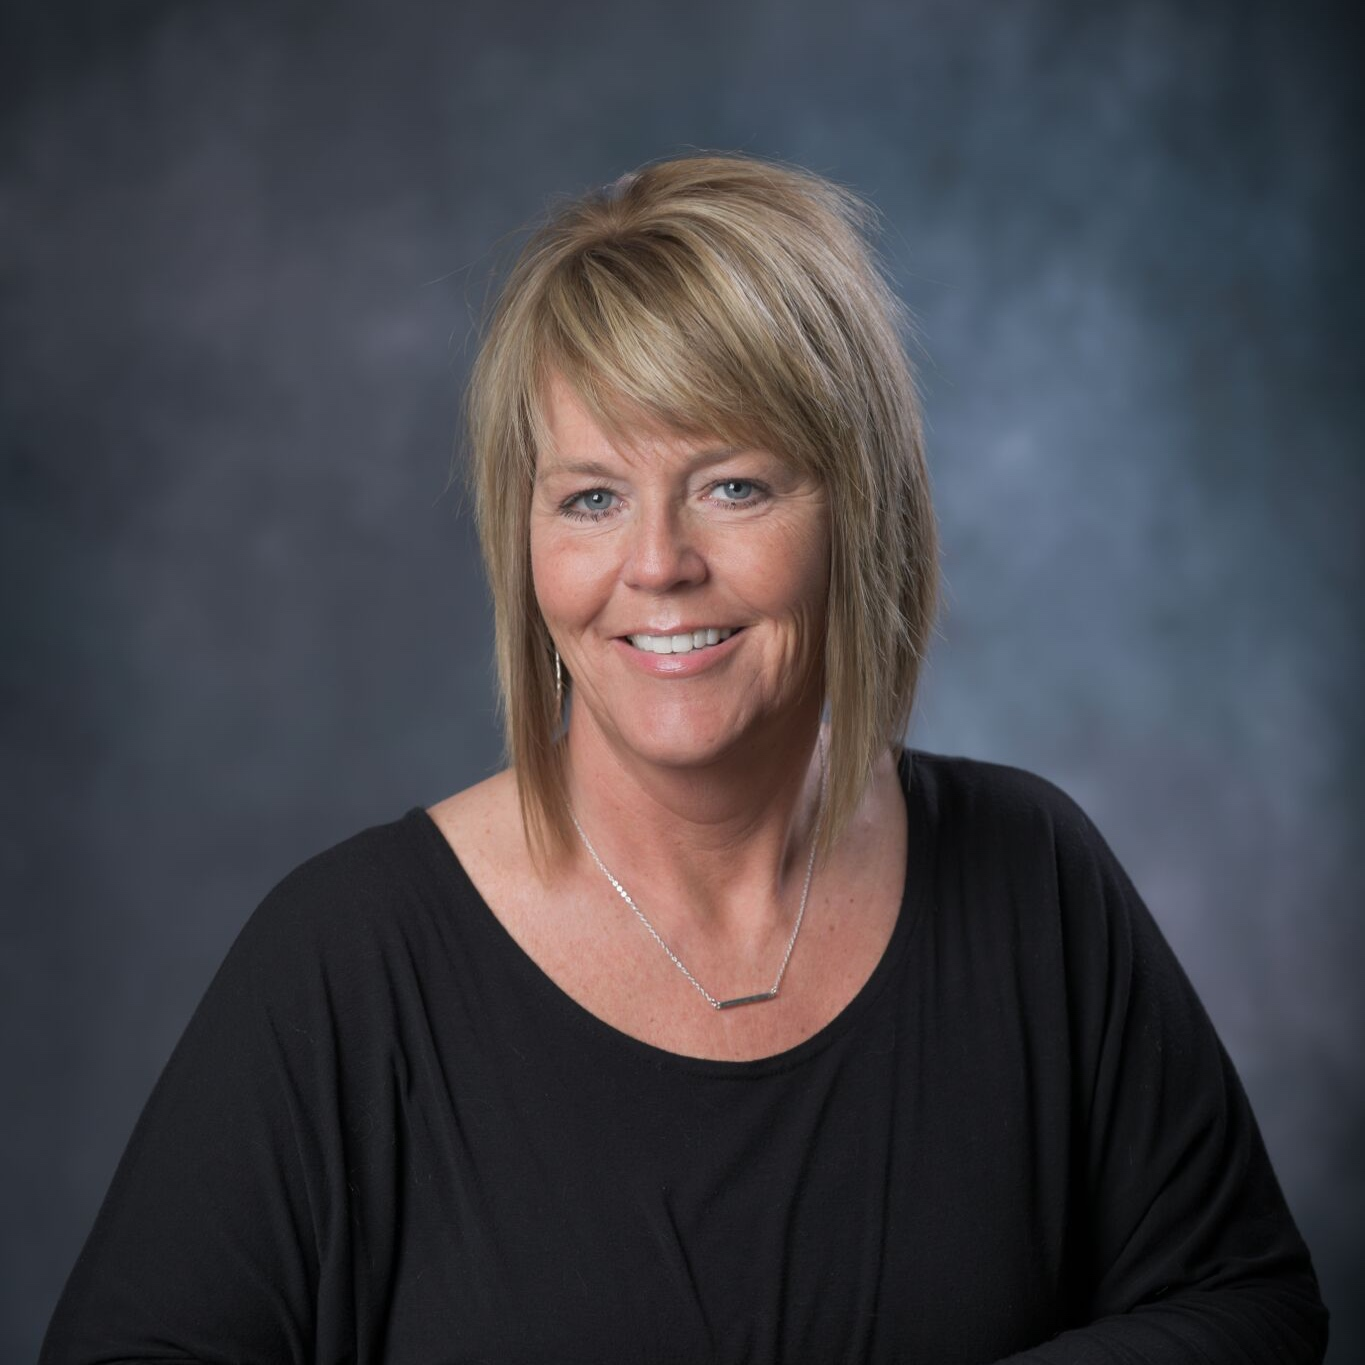 DEANNA   Deanna is part of the business team at Mailloux Dentistry. She enjoys the fast paced environment and versatility of her position on the team. Outside of the office, Deanna enjoys spending time with her family and dog where they can be found outdoors; kayaking, camping, and hiking. She also enjoys being with her grandchildren.